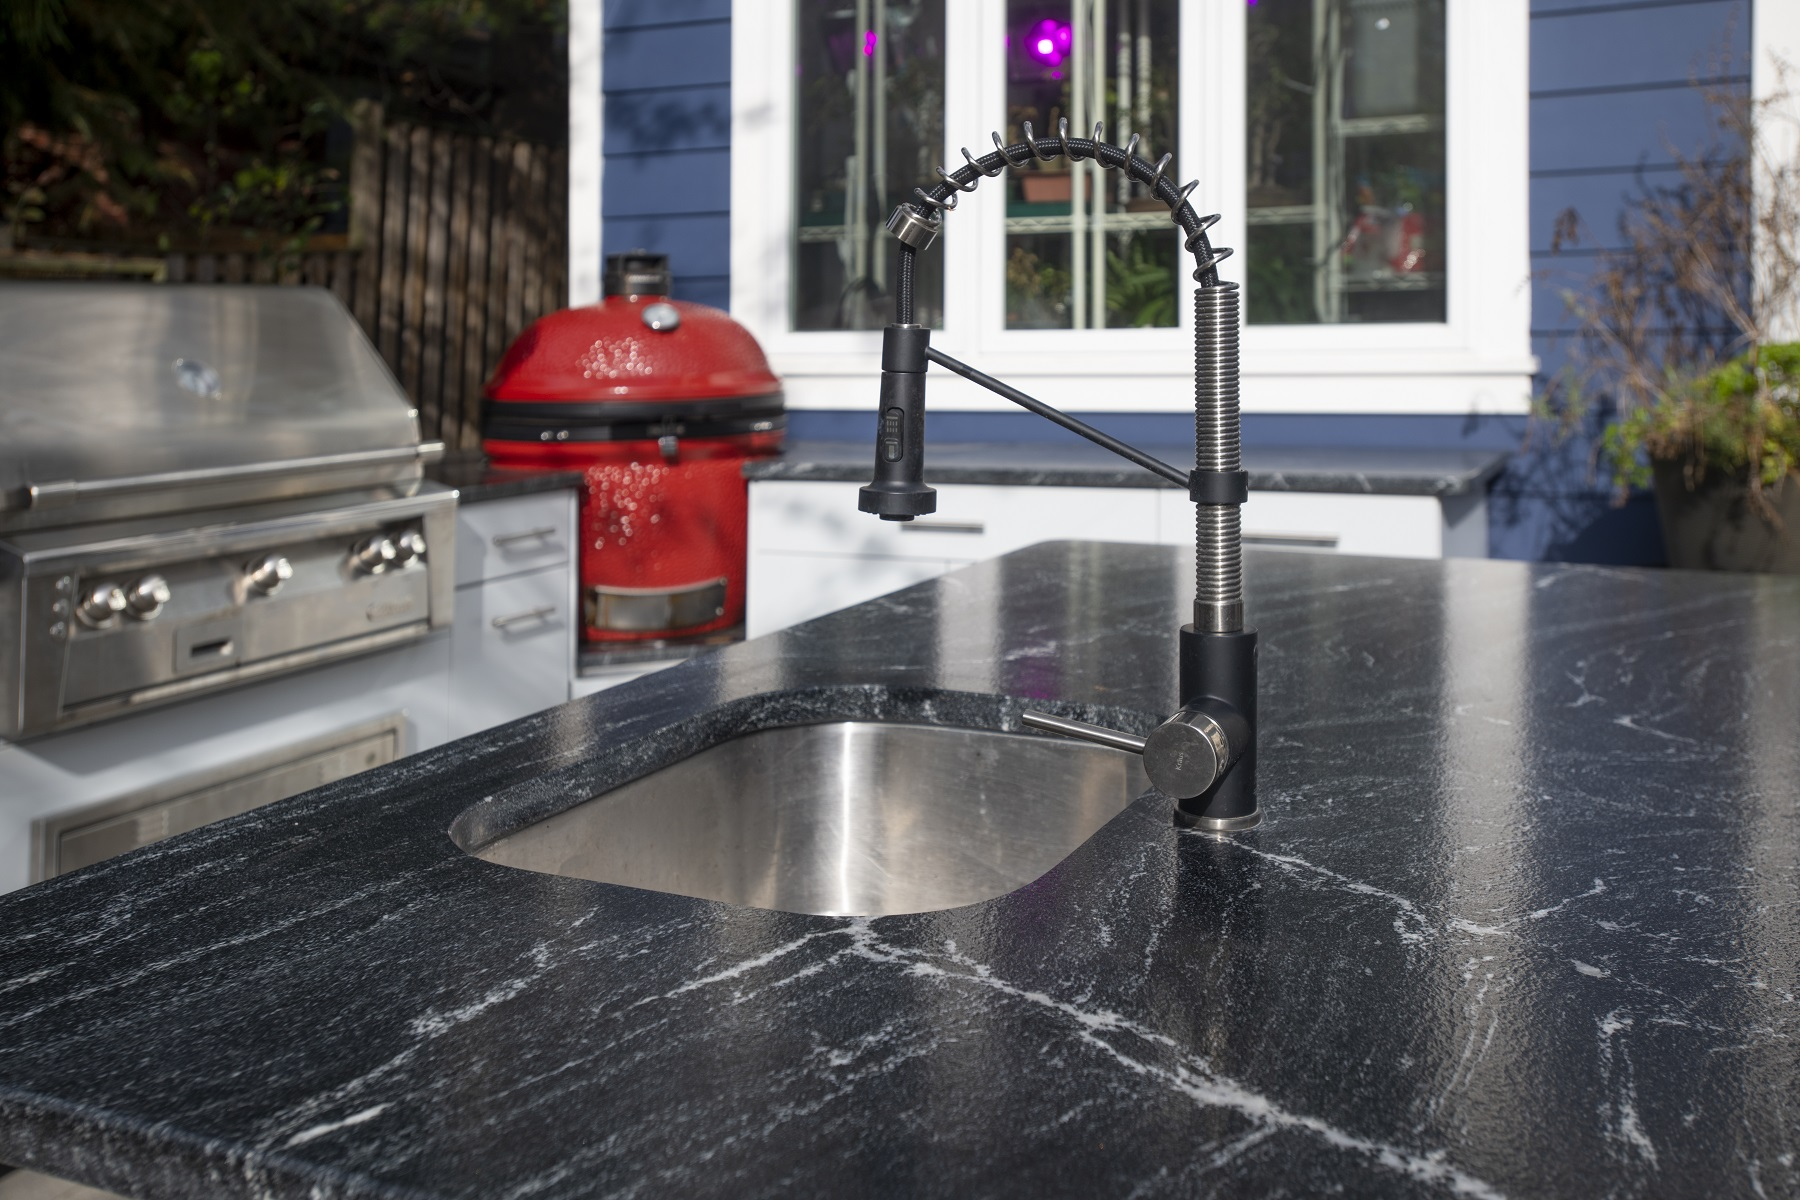 stainless sink for an outdoor kitchen with red green egg smoke and stainless steel grill in the background